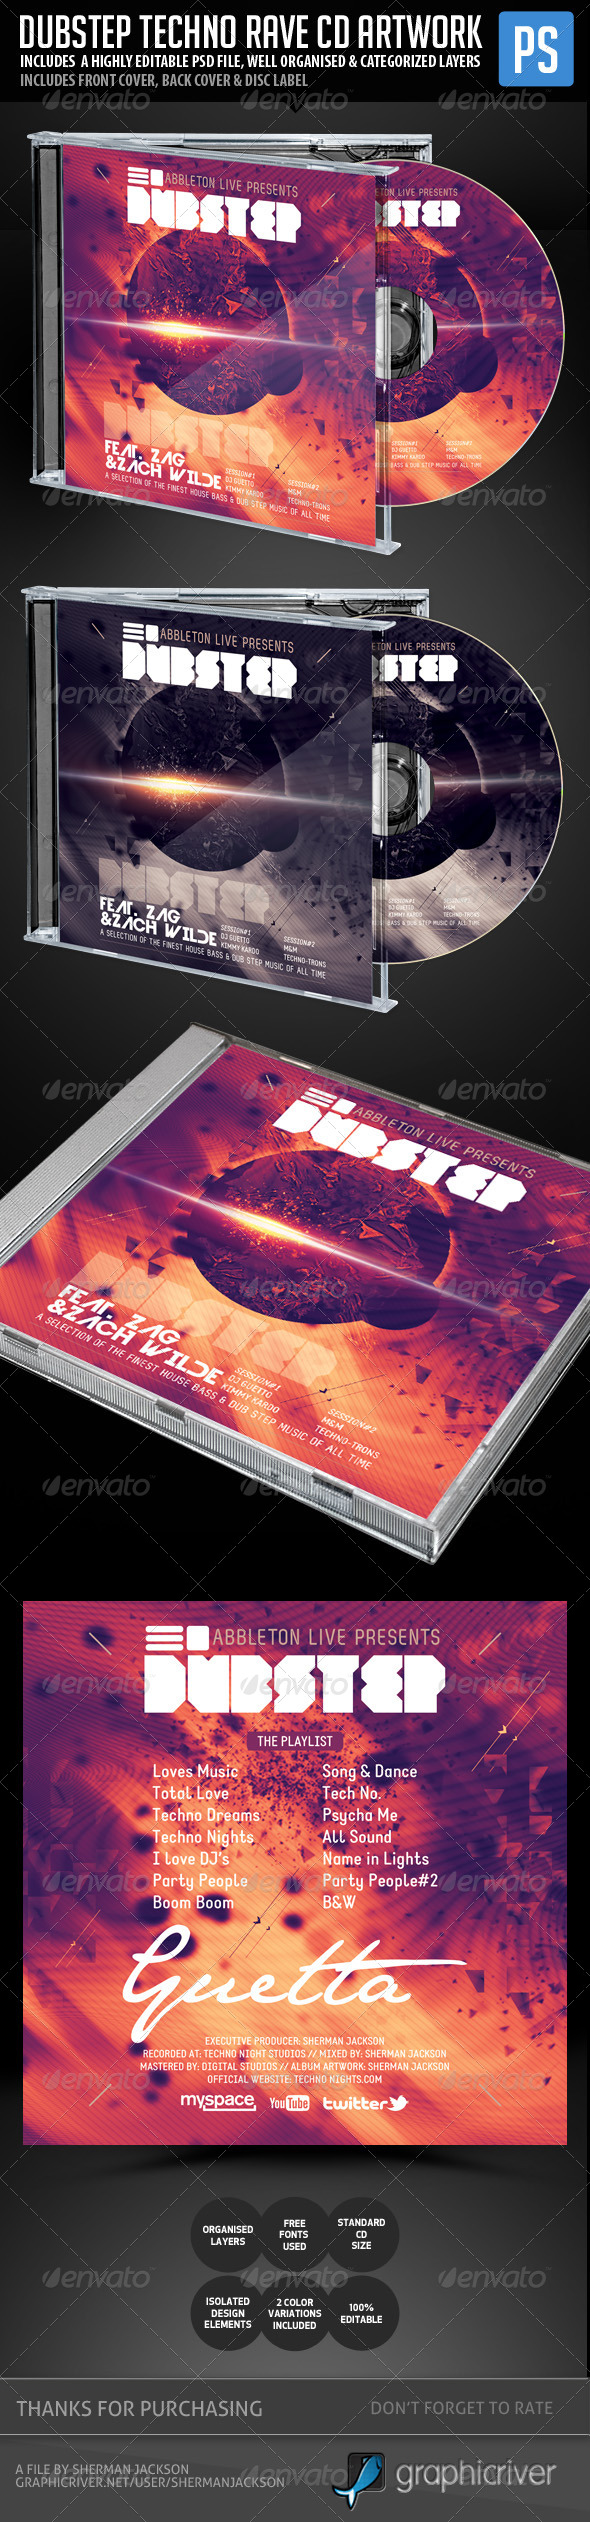 Dubstep, Techno, Rave CD Template - CD & DVD Artwork Print Templates